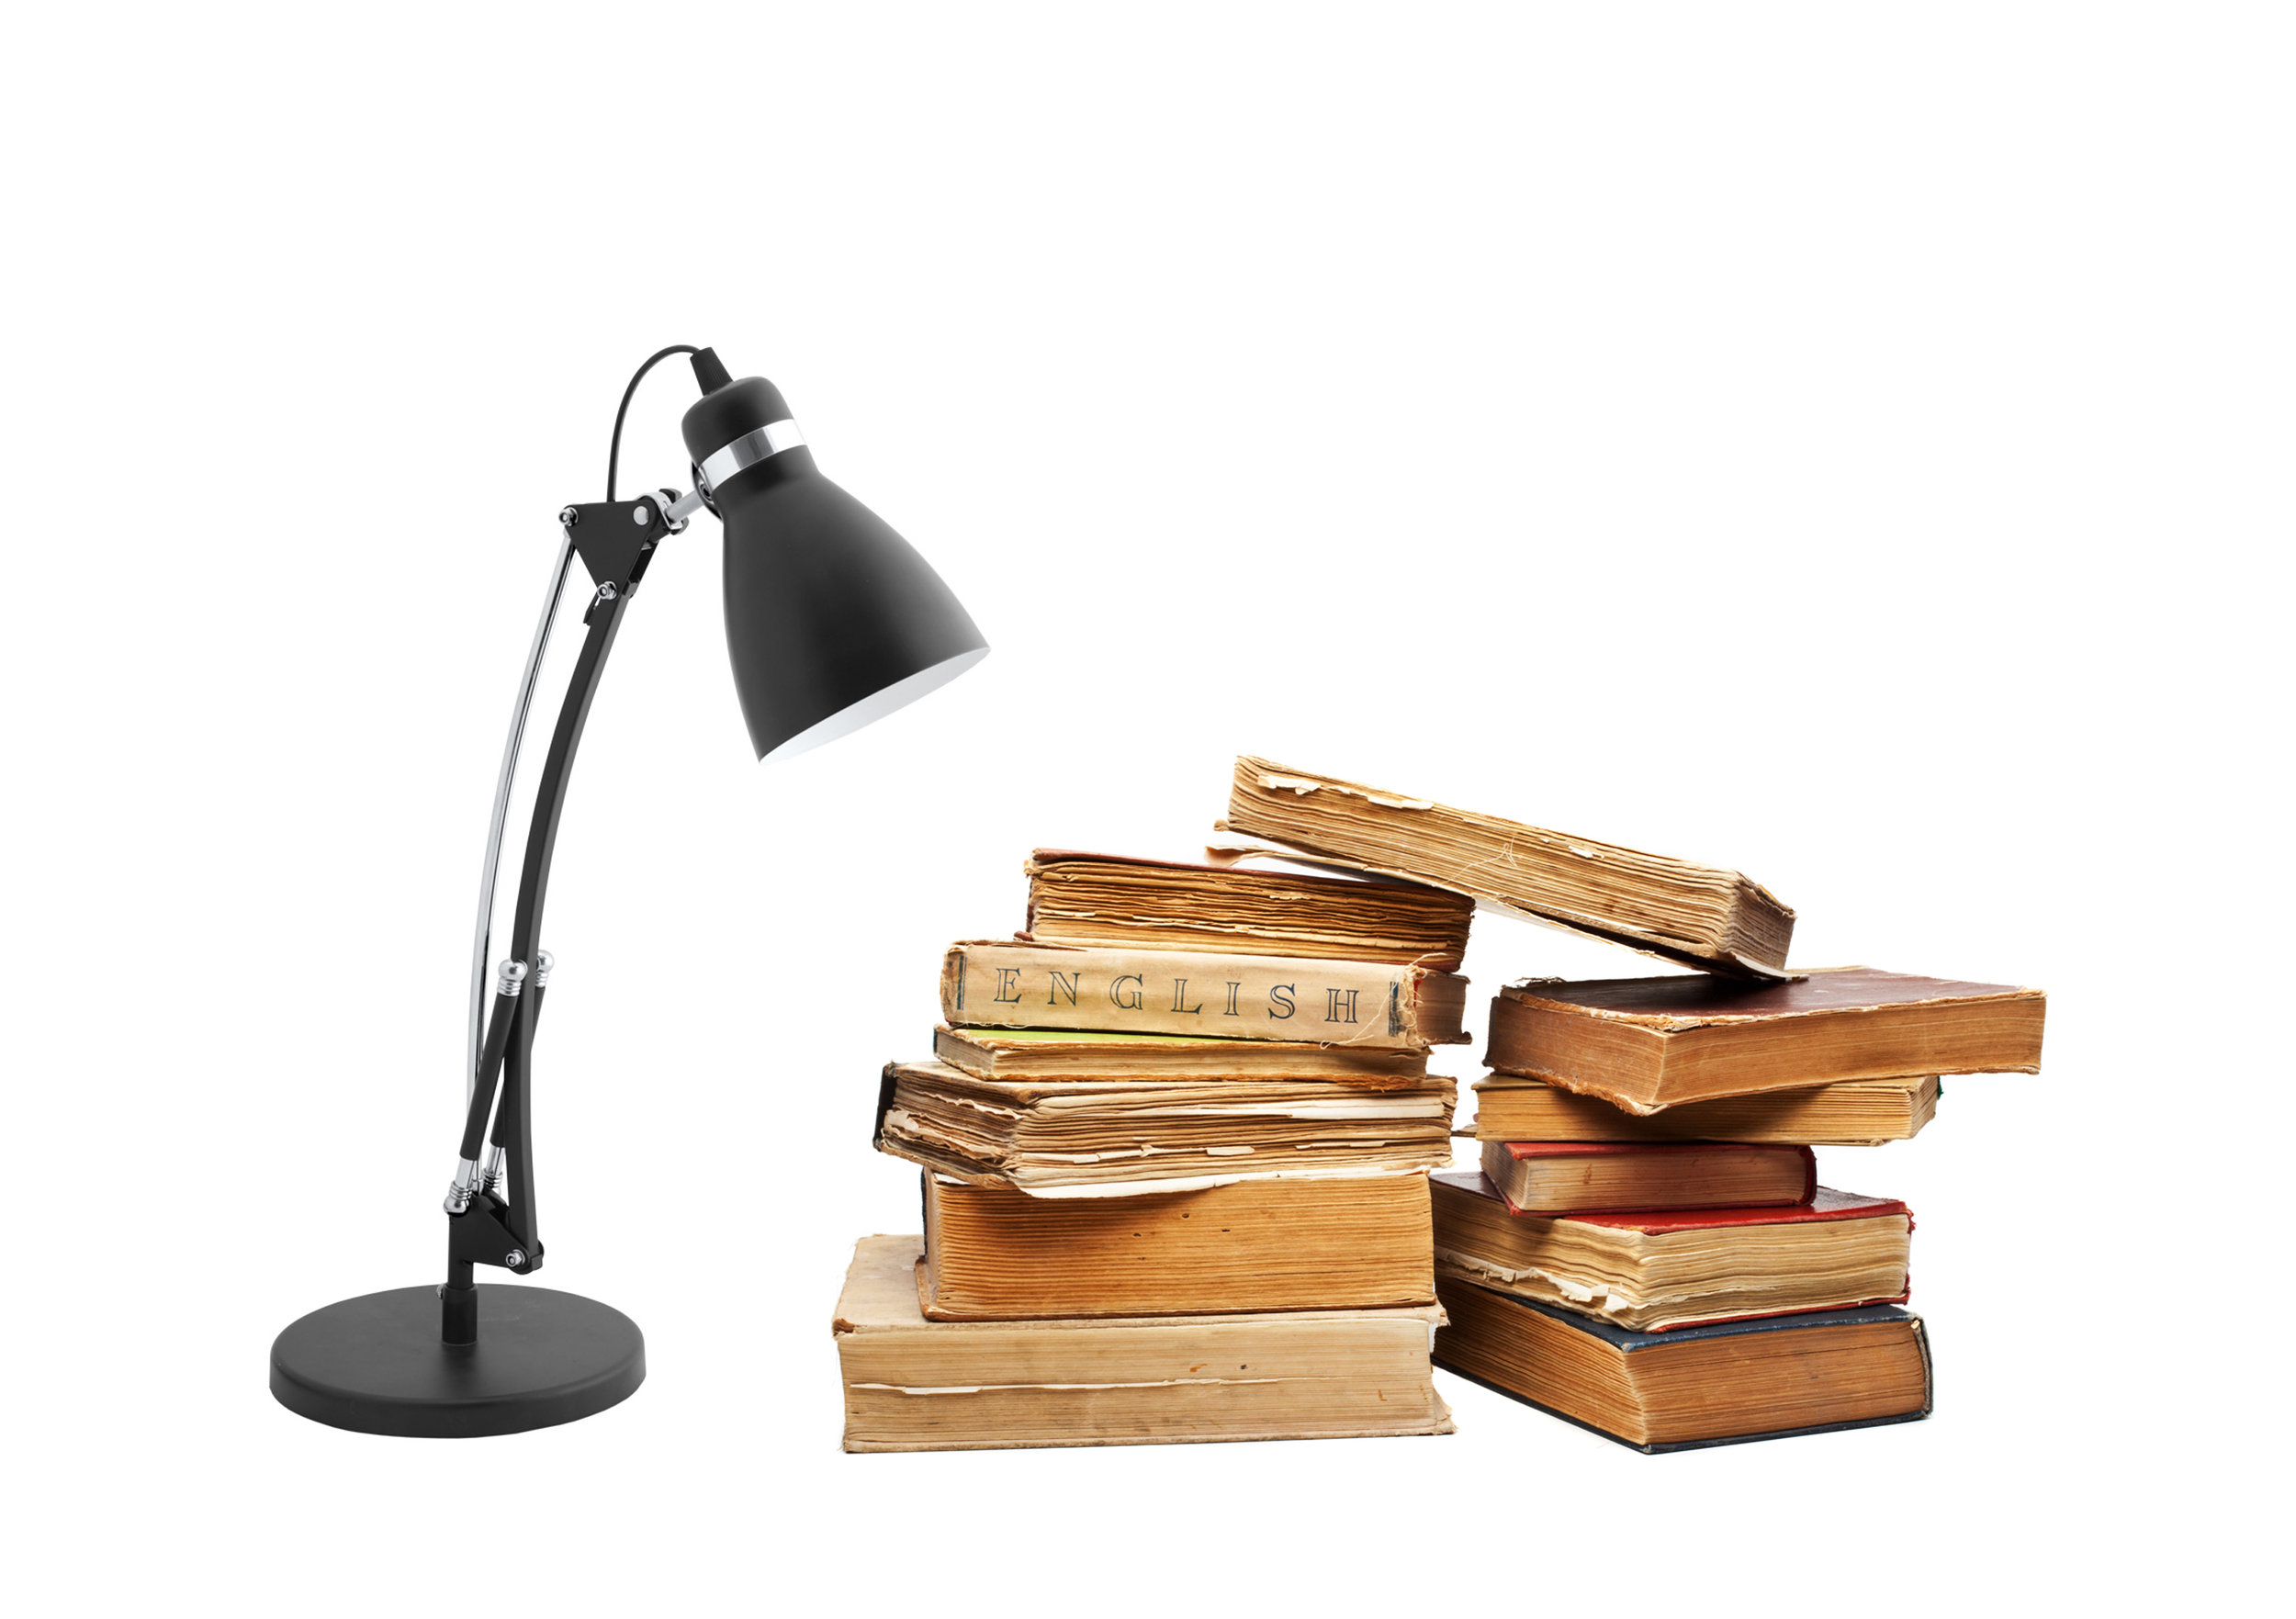 old-books-with-a-lamp-PRFVCWX.jpg